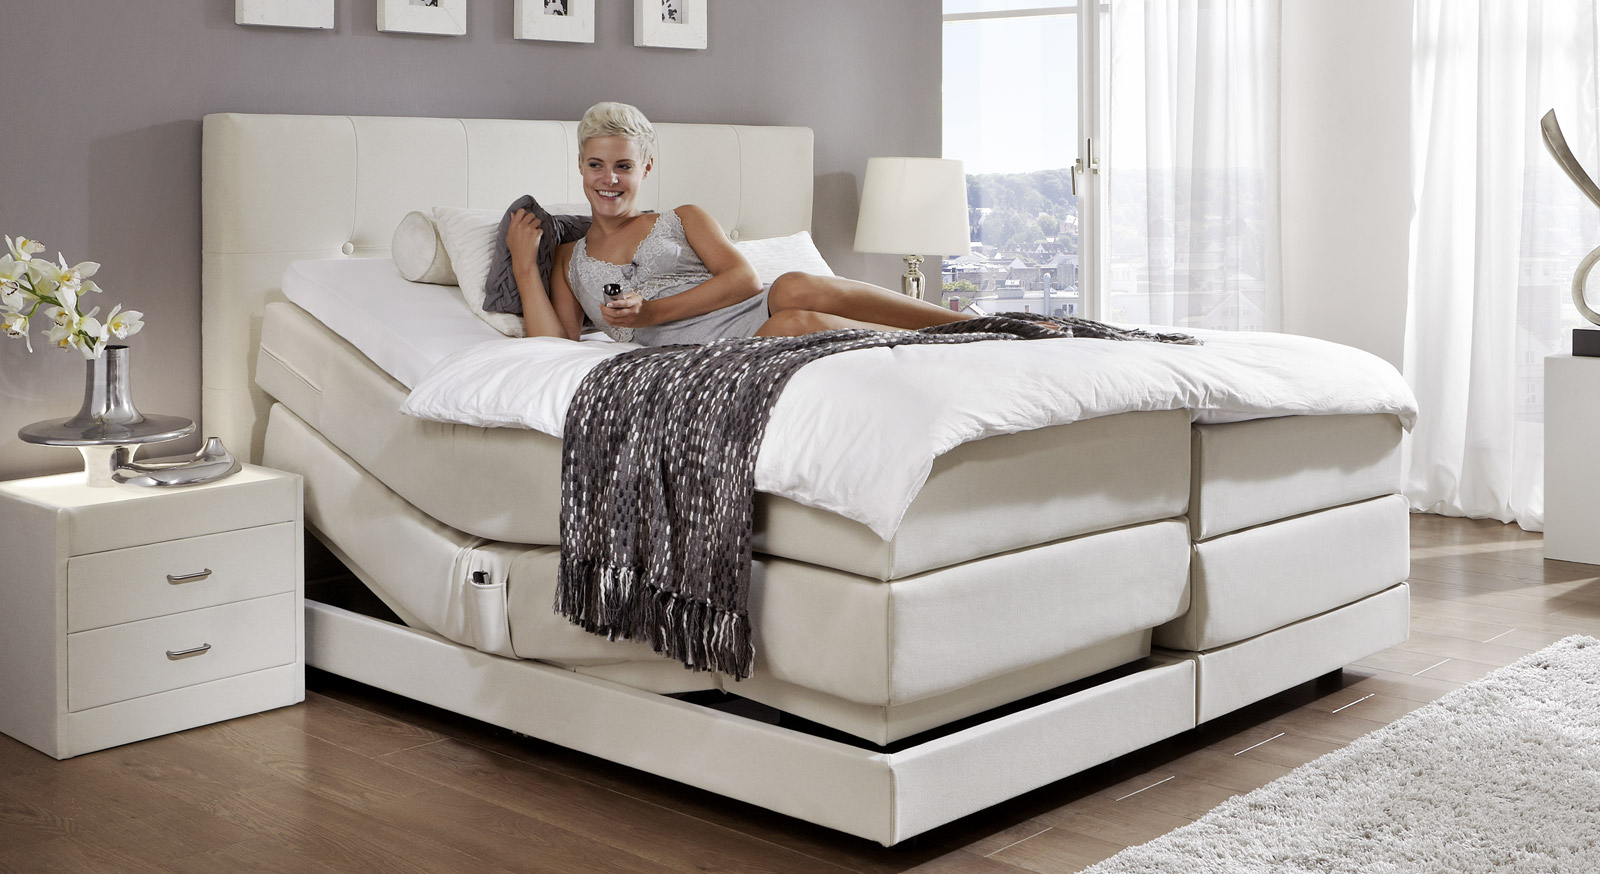 boxspringbett mit bettkasten elektrisch. Black Bedroom Furniture Sets. Home Design Ideas